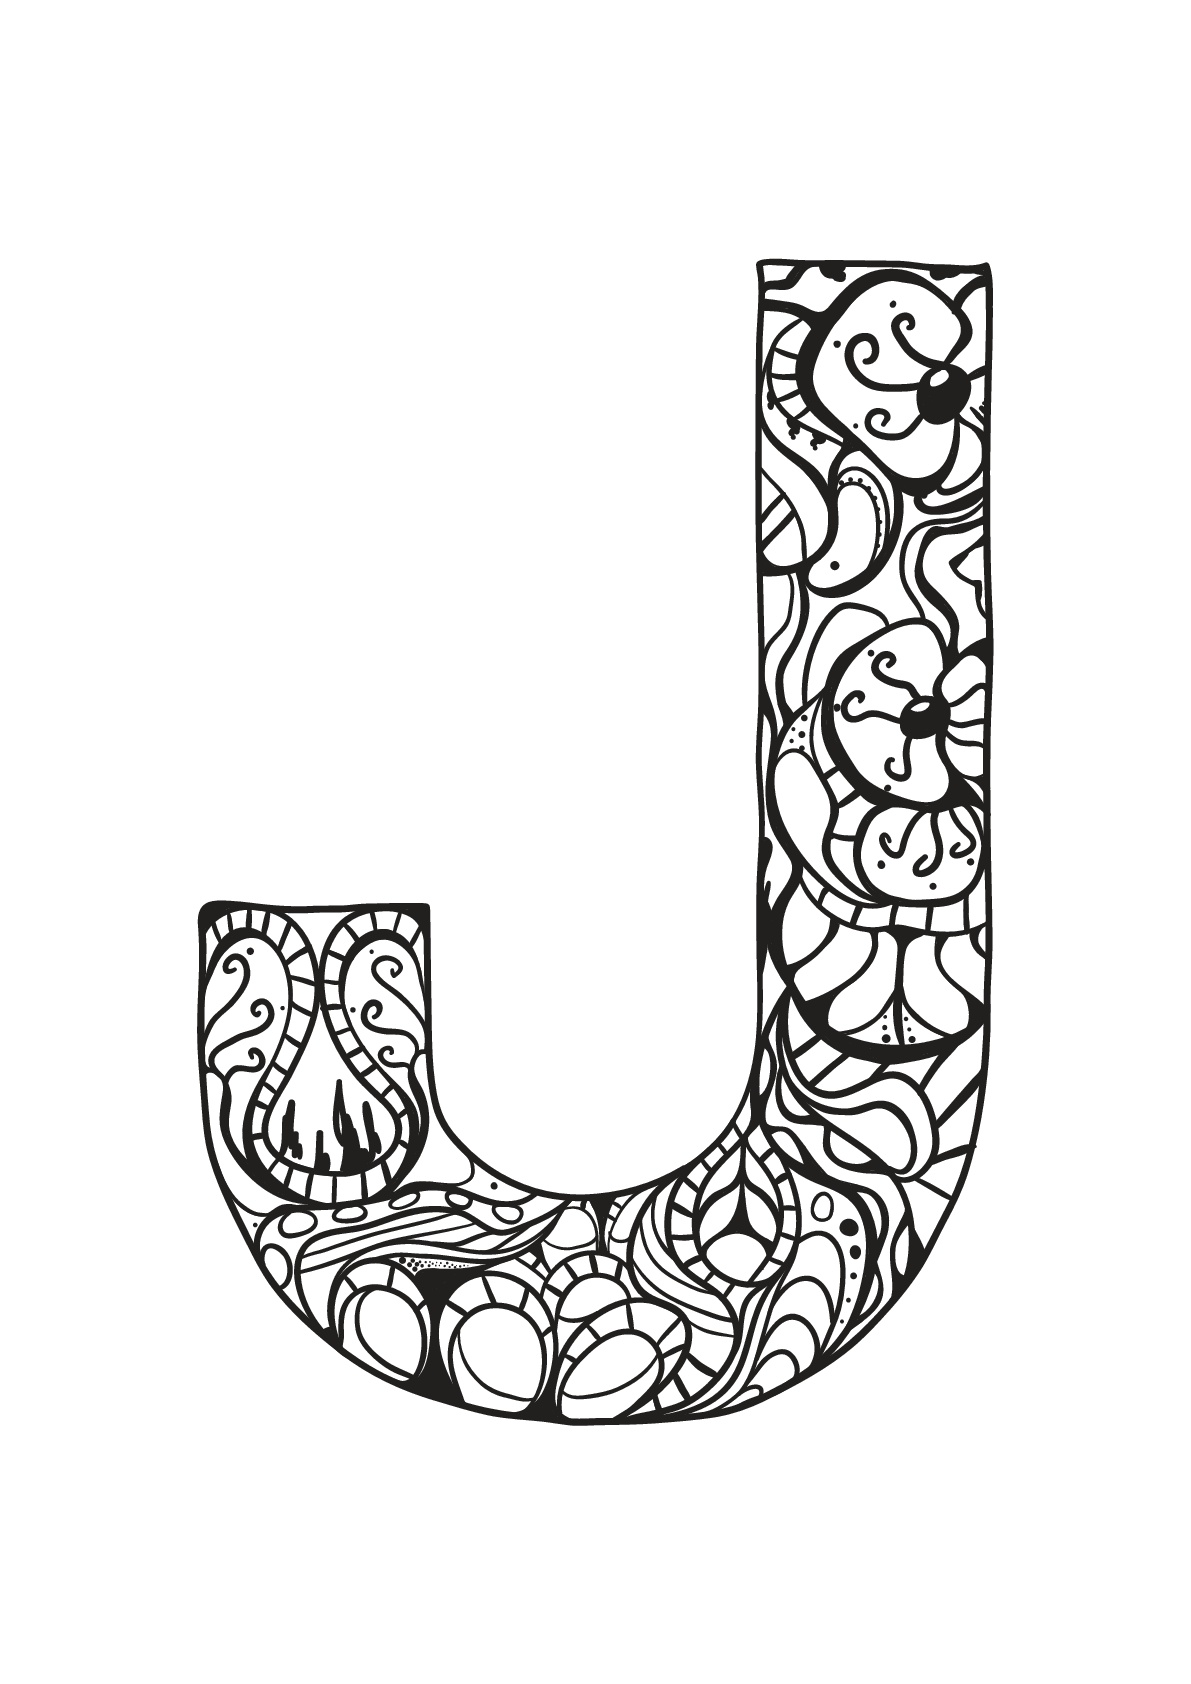 Alphabet free to color for kids Alphabet Kids Coloring Pages